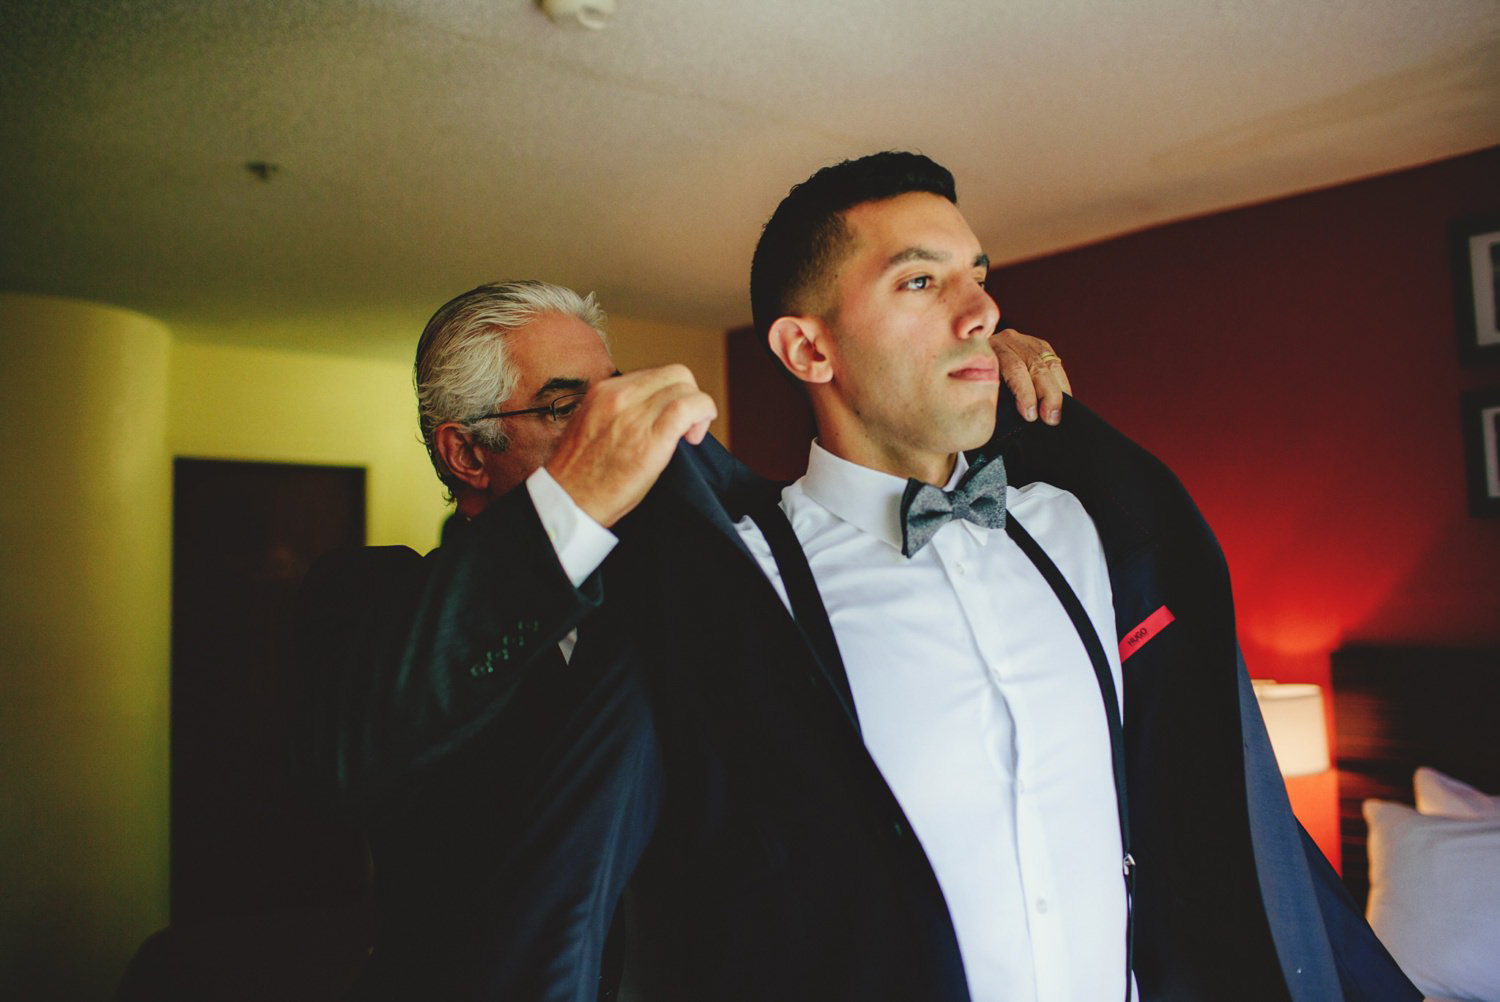 editorial ringling wedding: dad helping put on grooms jacket